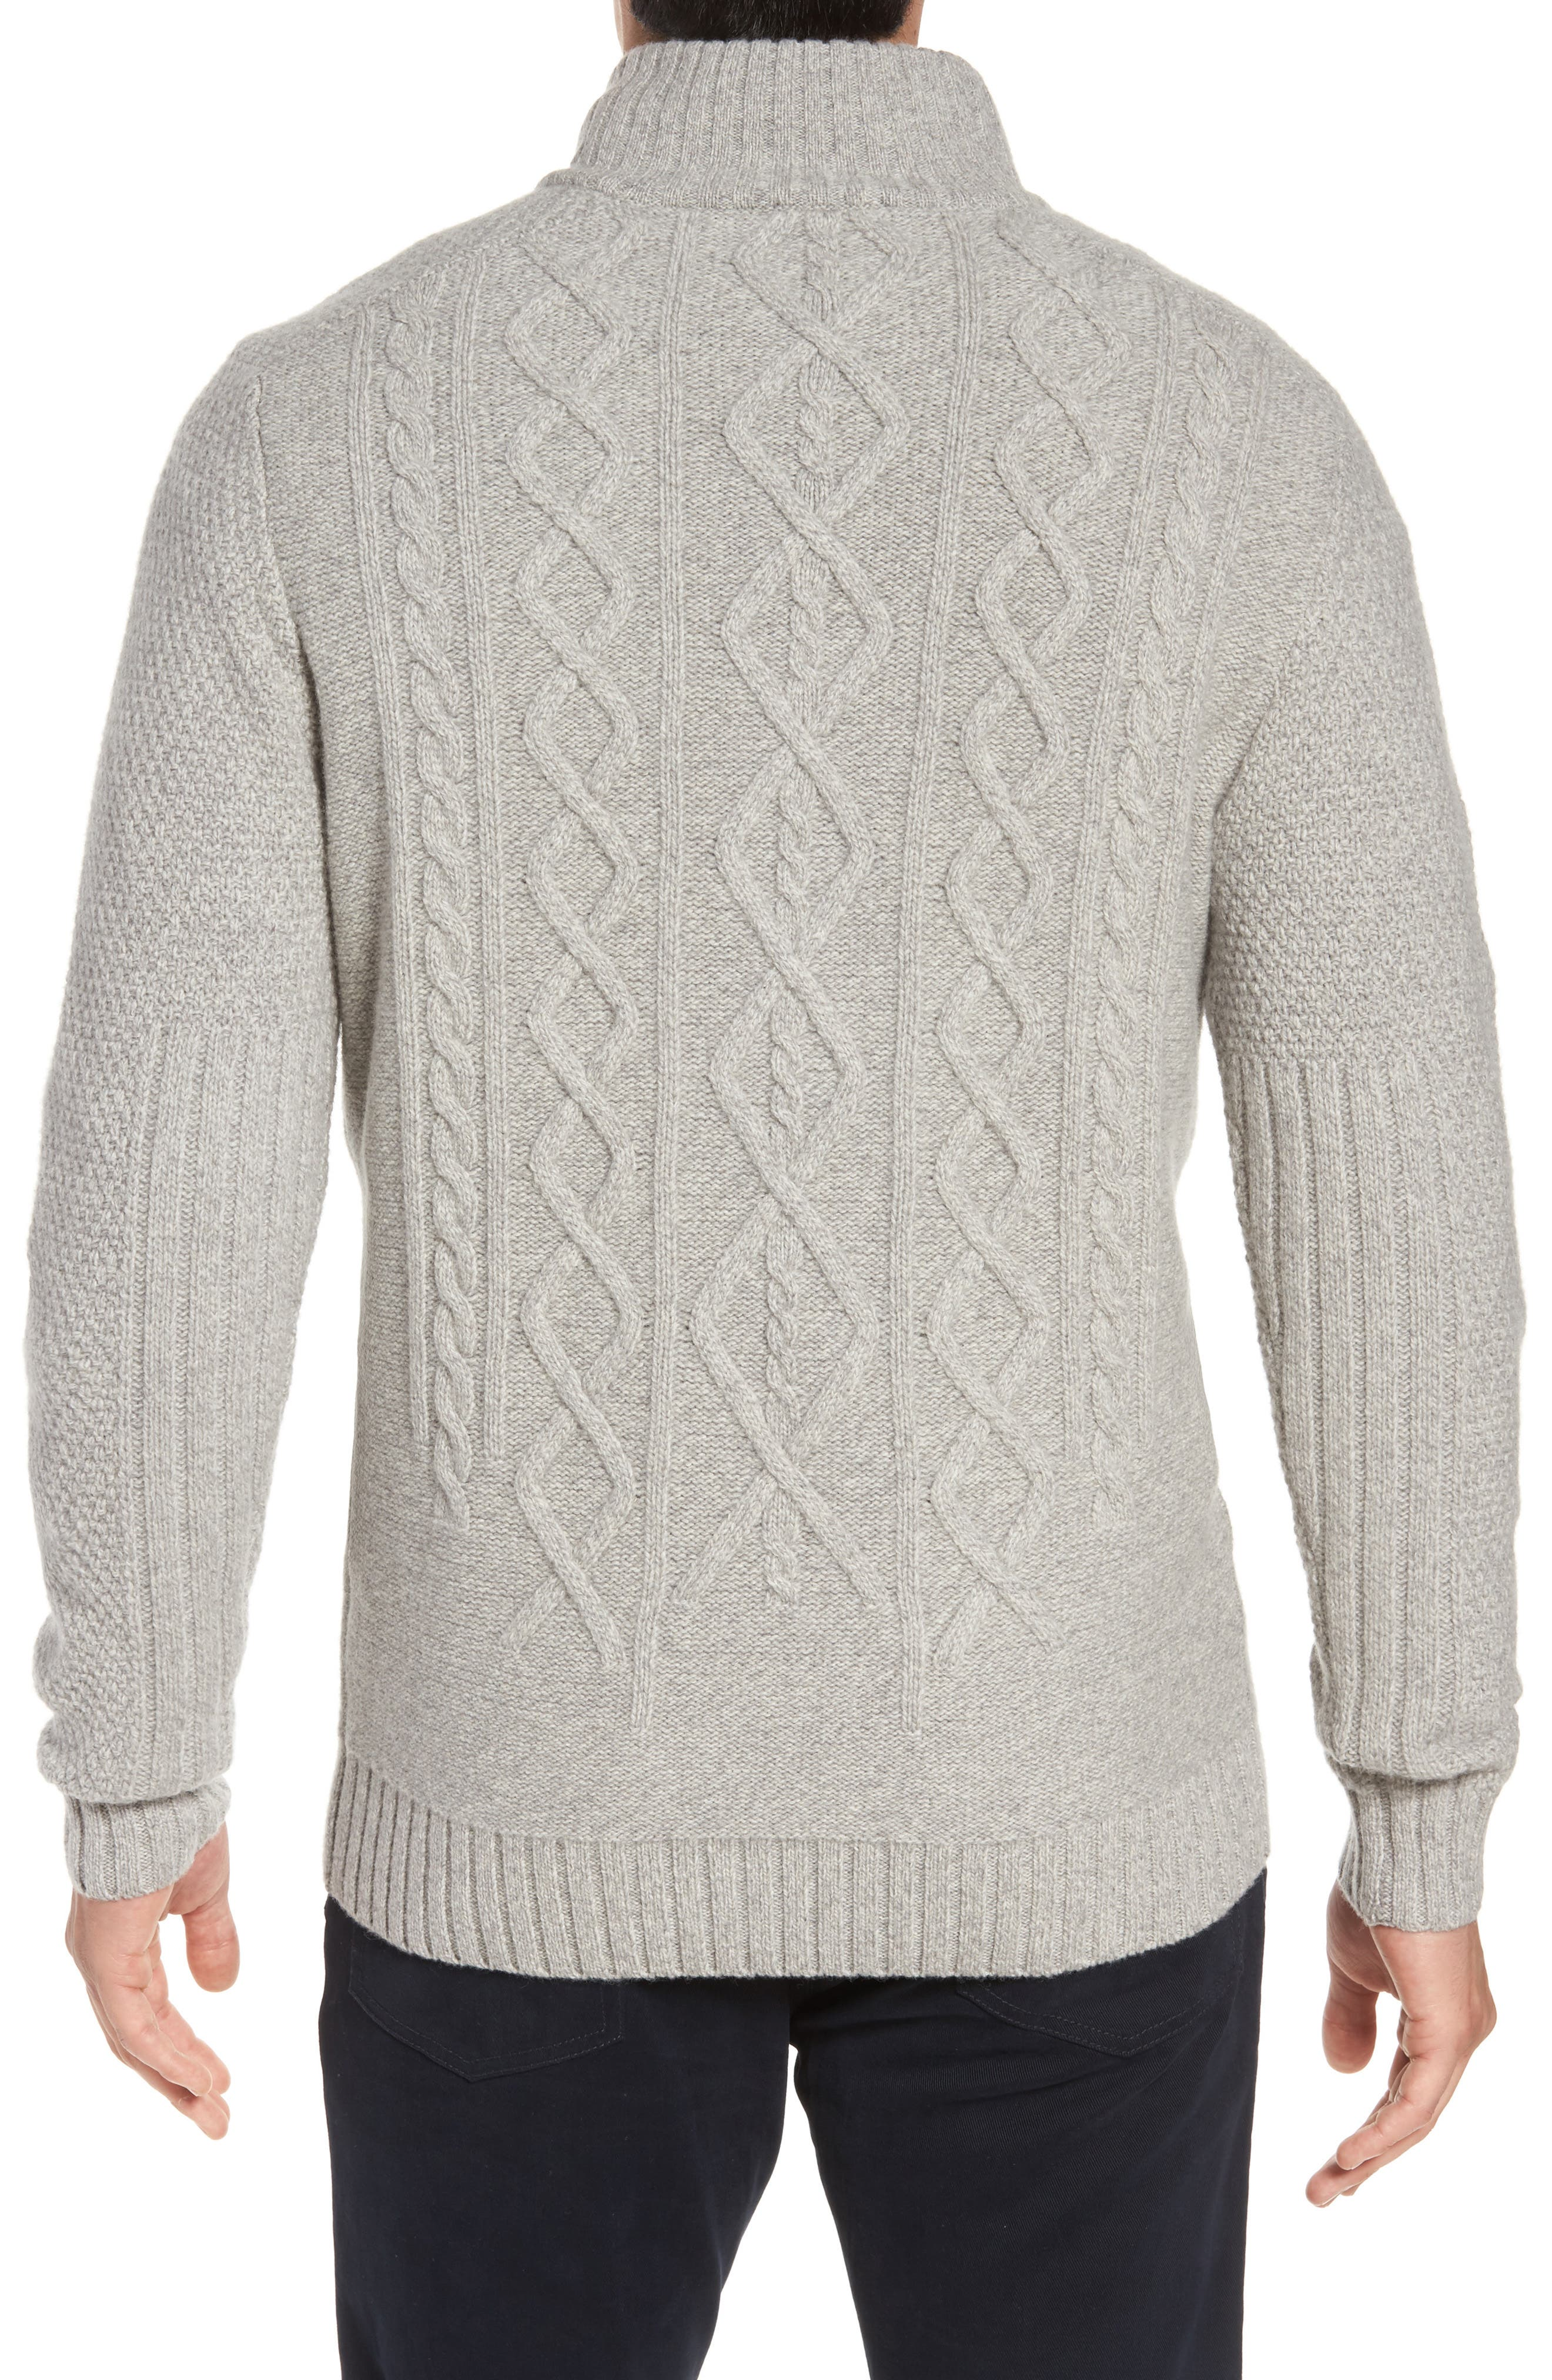 Cape Scoresby Wool Sweater,                             Alternate thumbnail 4, color,